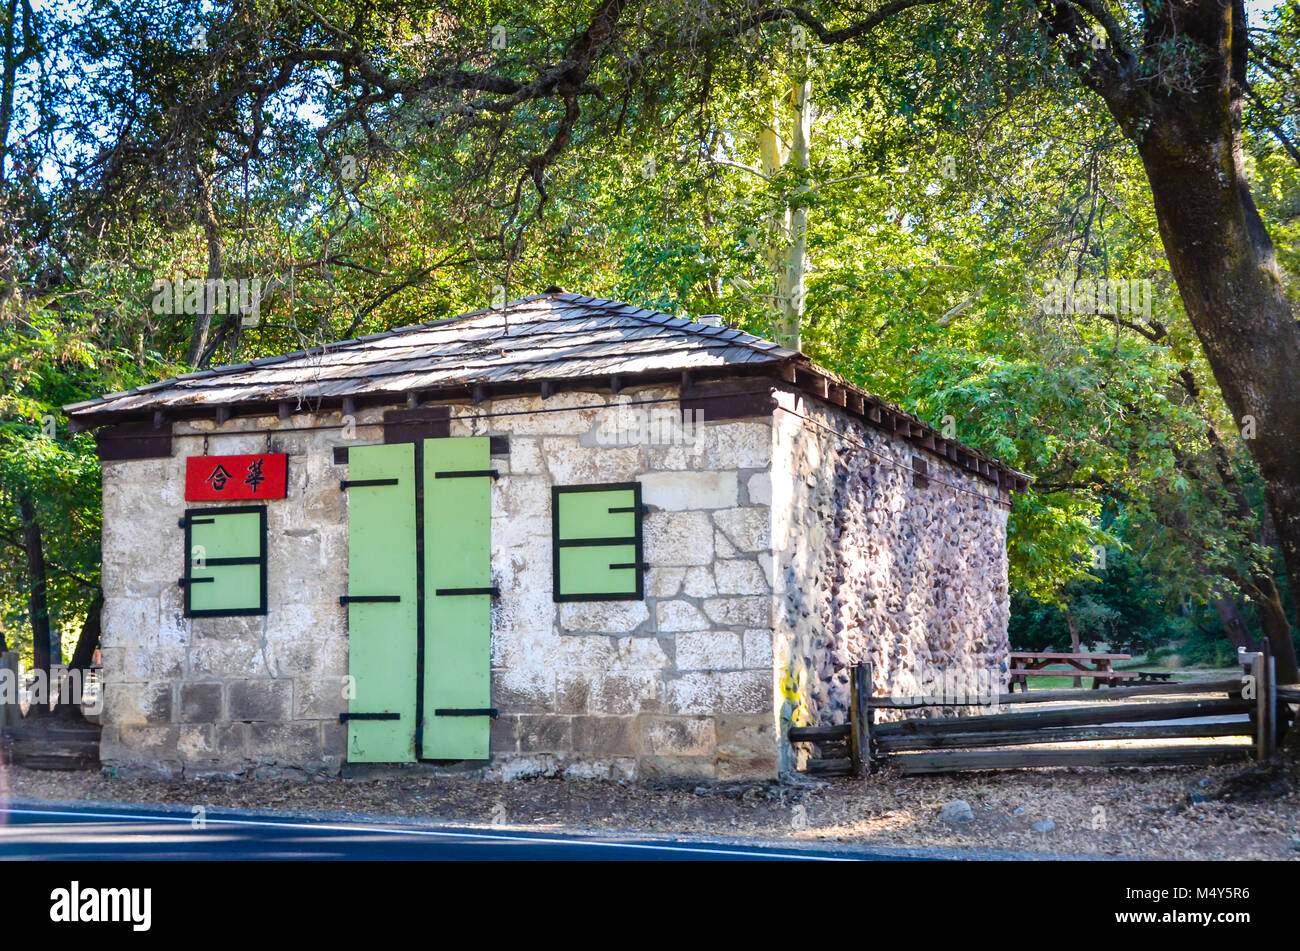 Man Lee and Wah Hop shops, remains of Chinese colony, at Marshall Gold Discovery Park in Coloma, CA. - Stock Image